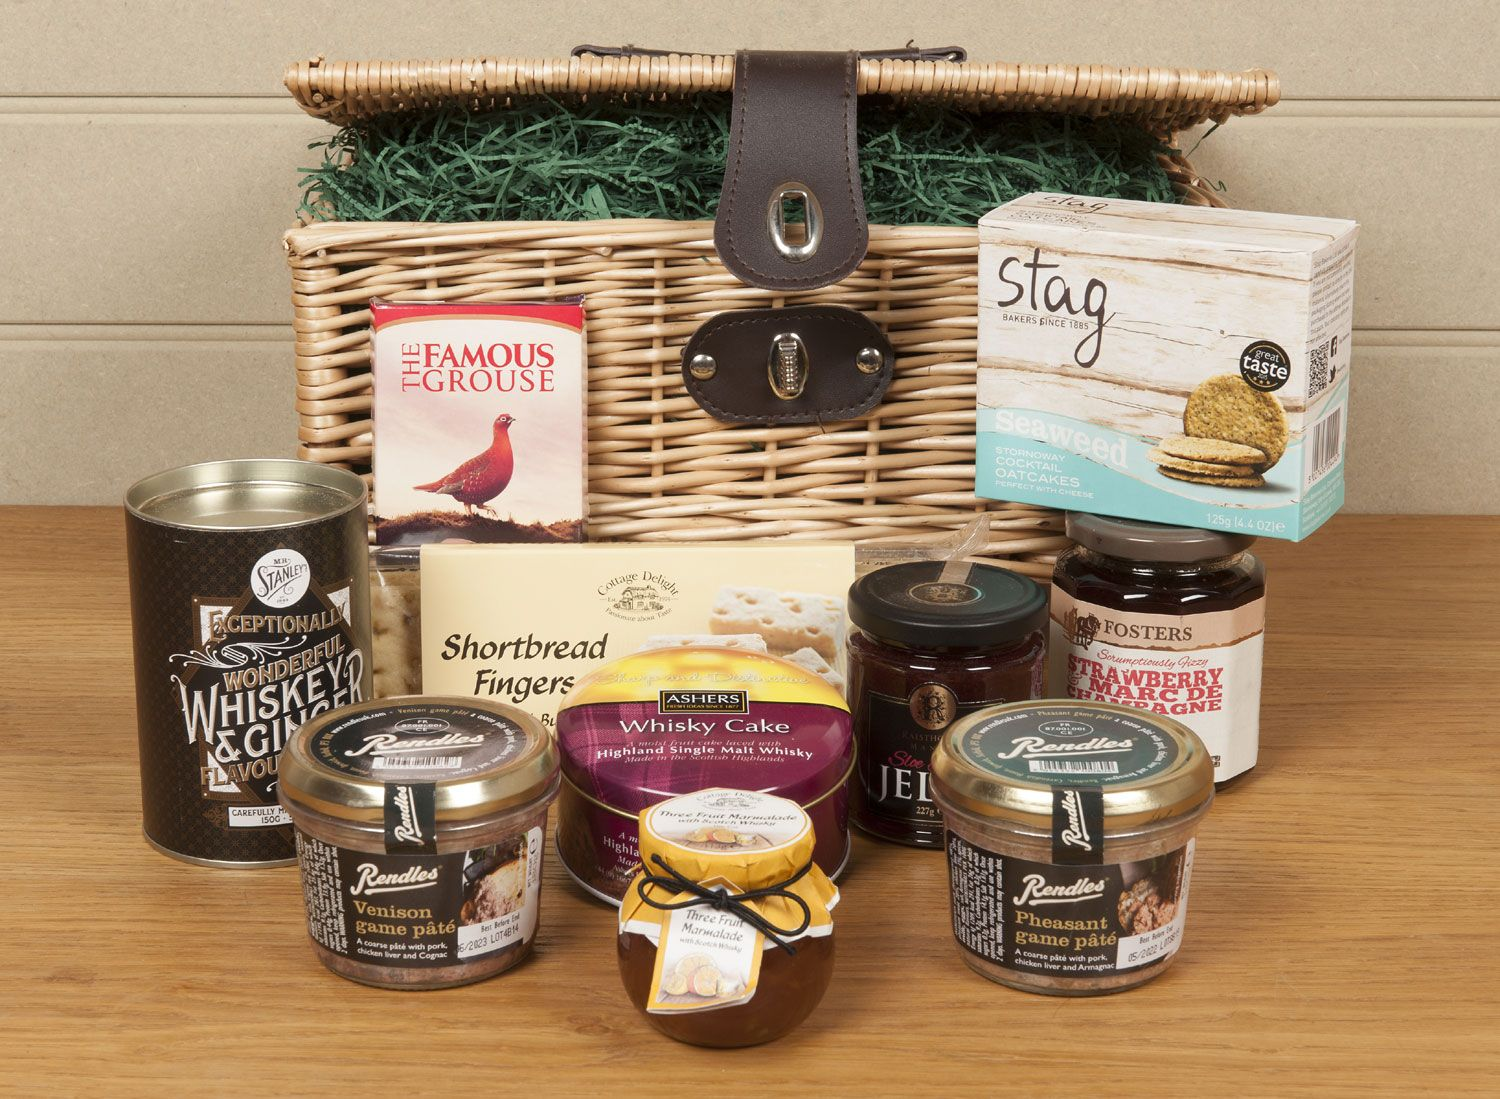 Our Highland Hamper with some of the contents placed on a wooden table